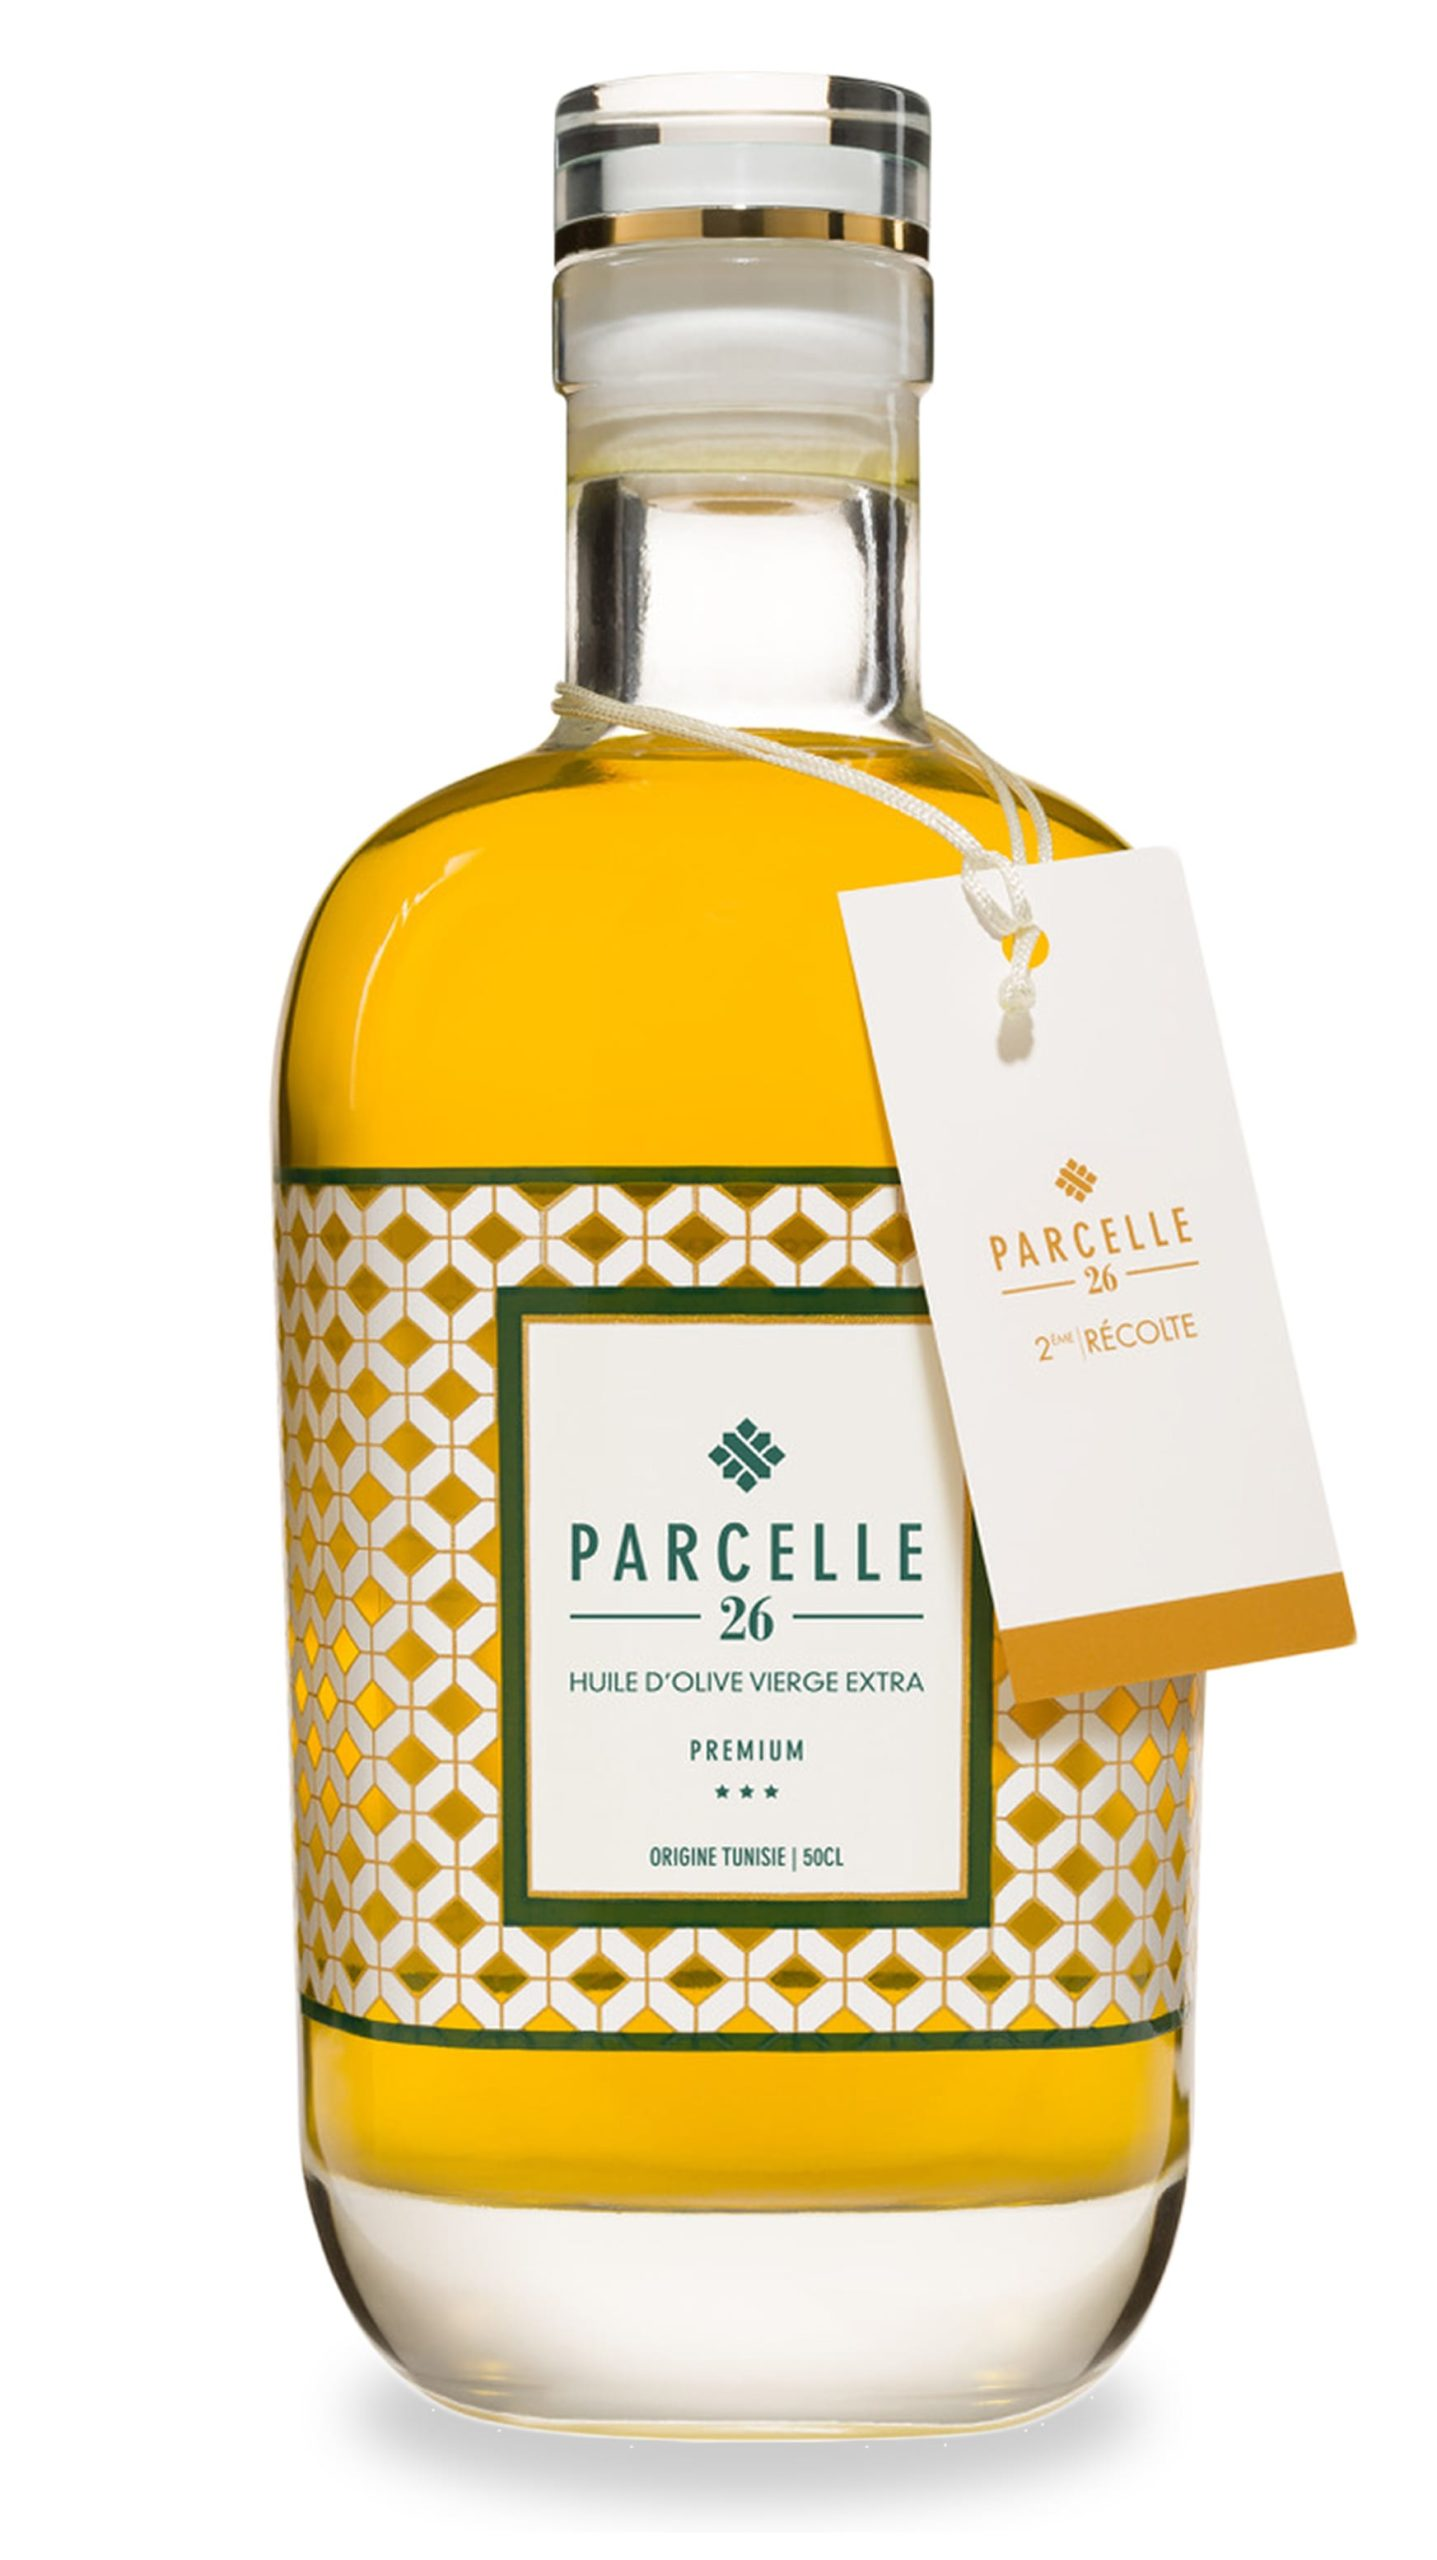 PARCELLE 26 BLEND SELECTION